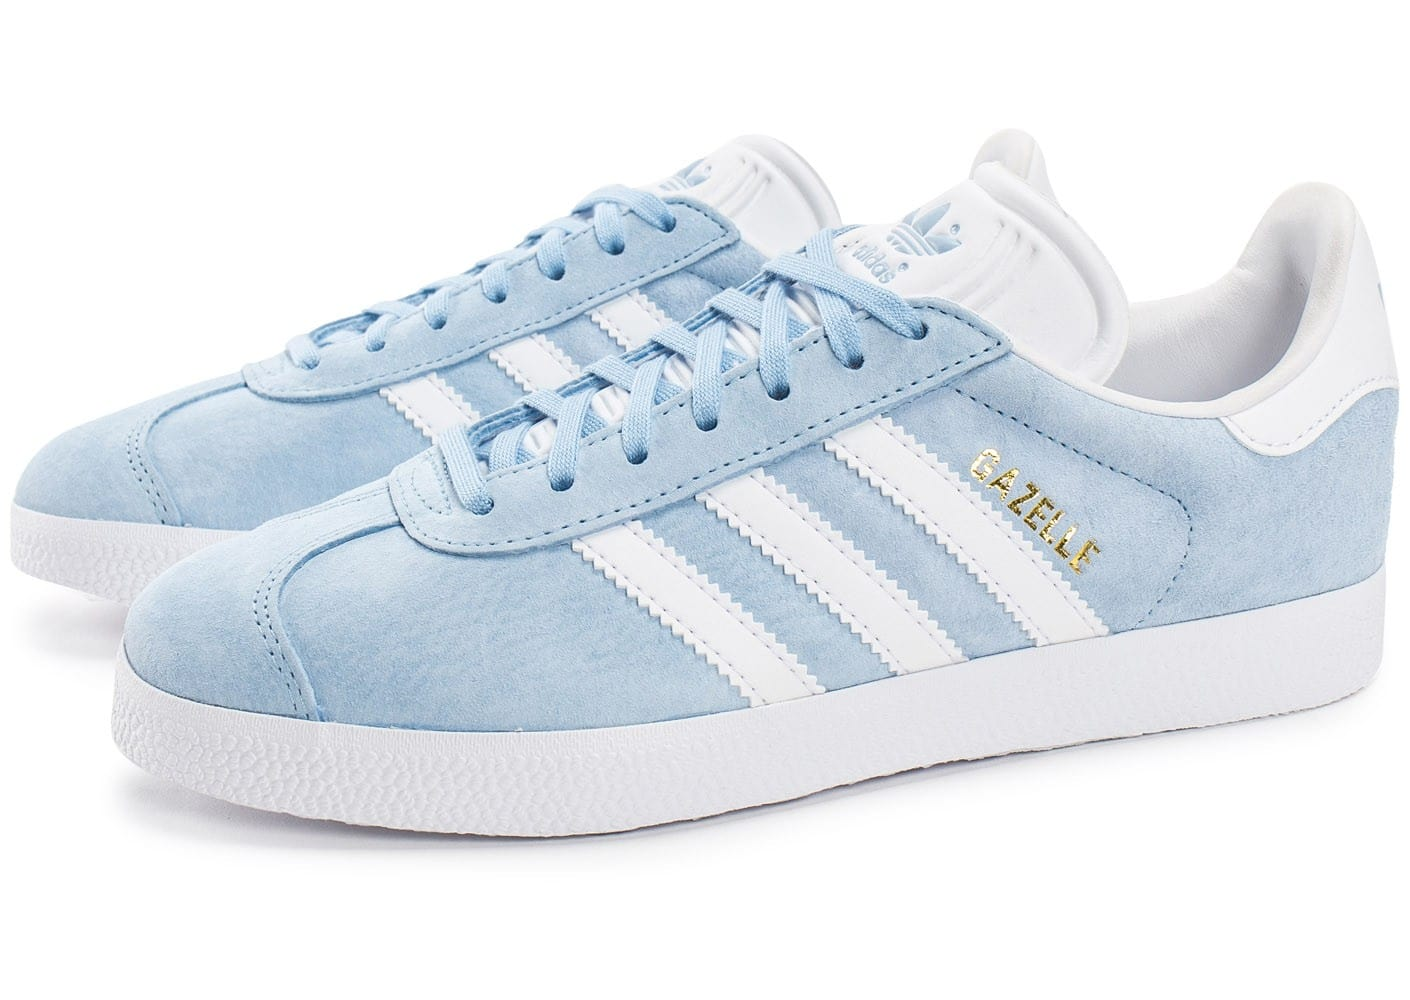 adidas gazelle w bleu ciel chaussures adidas chausport. Black Bedroom Furniture Sets. Home Design Ideas